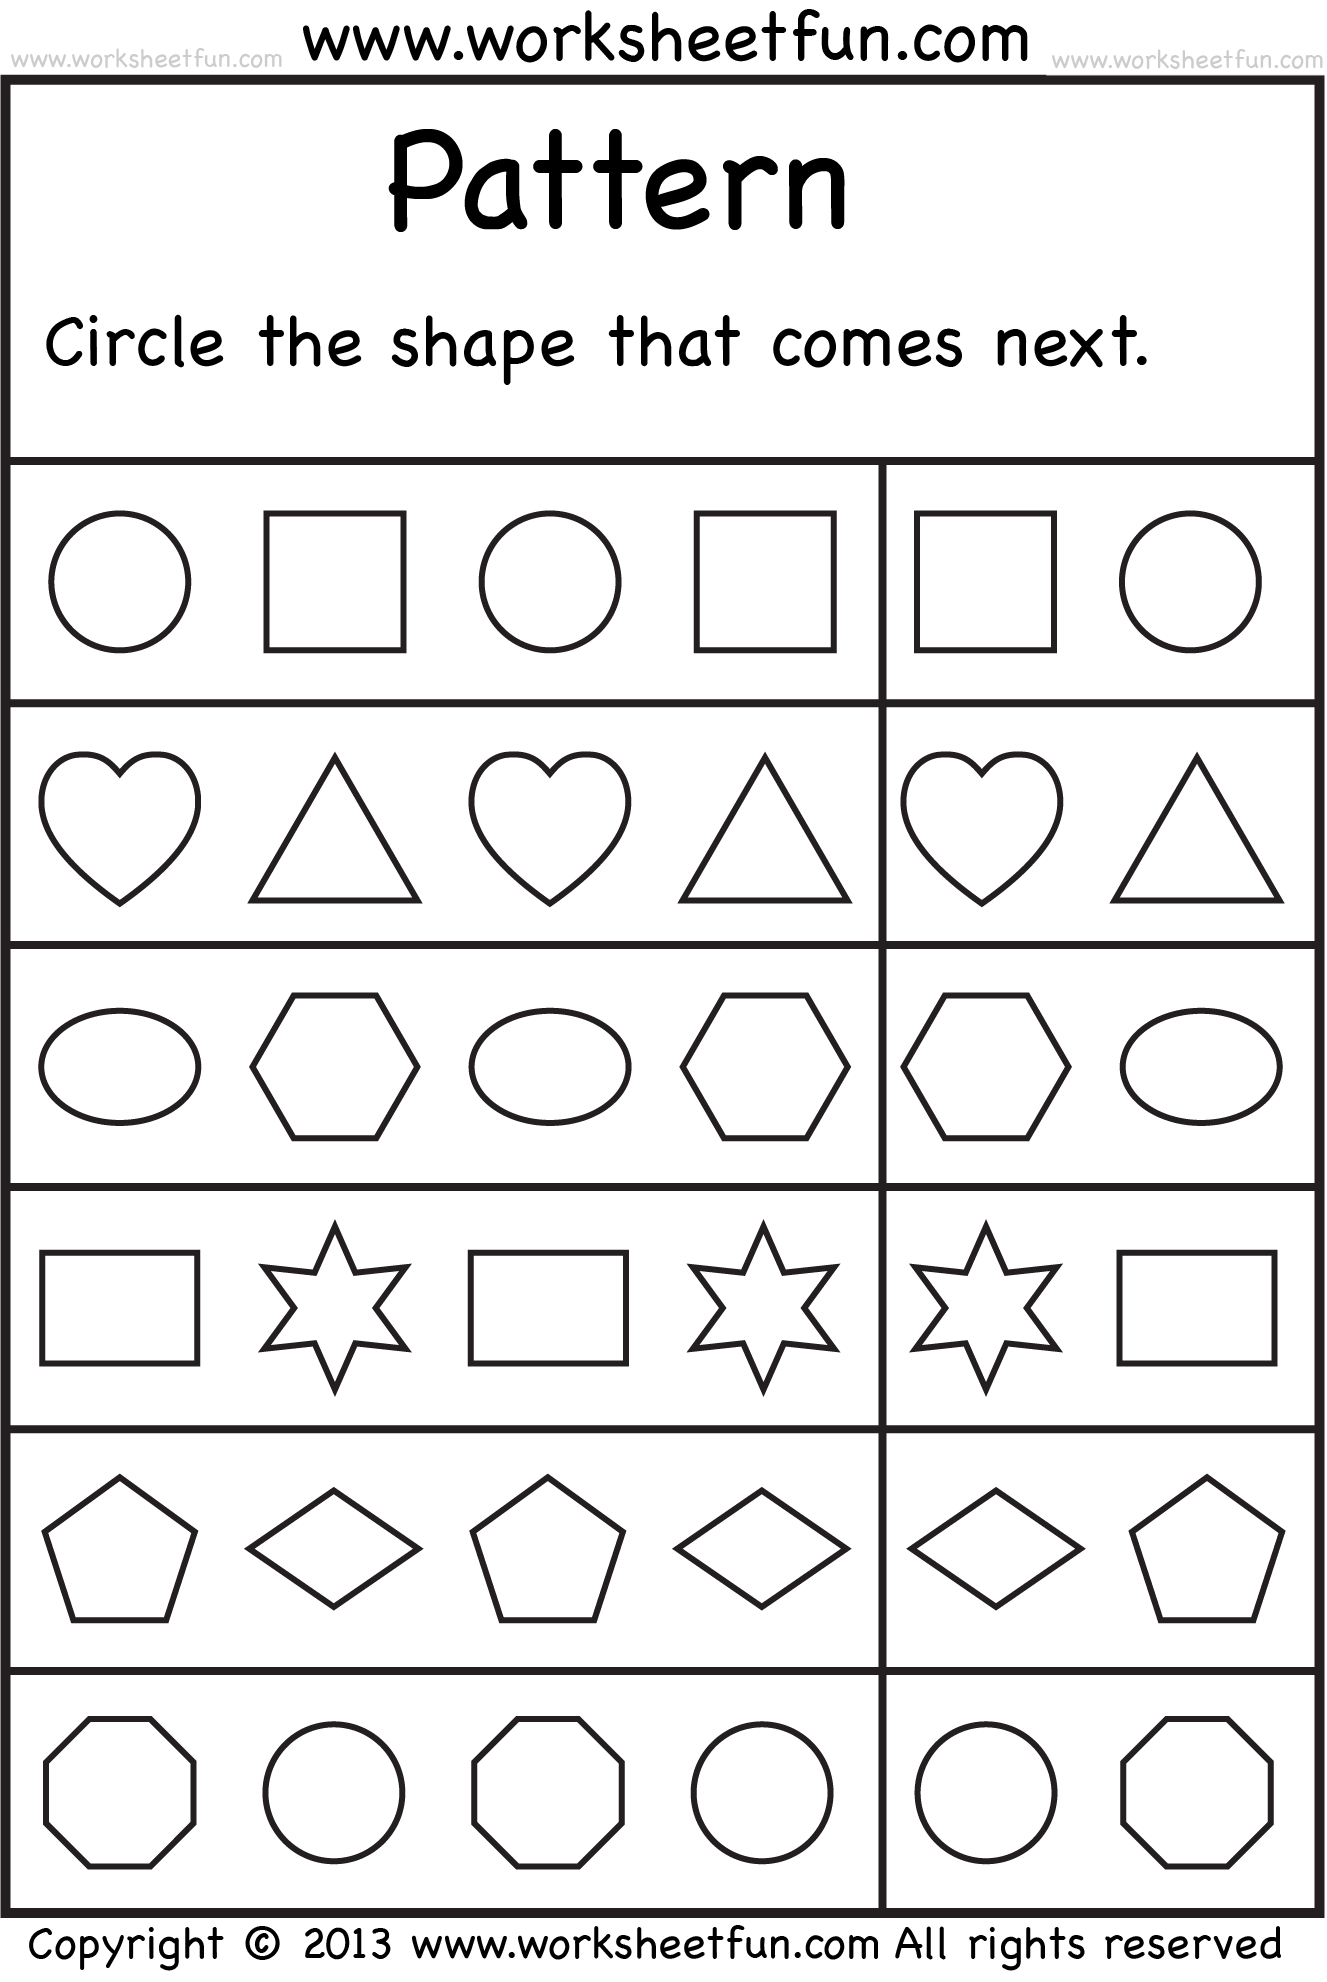 Weirdmailus  Splendid  Images About School Worksheets On Pinterest  Number Words  With Handsome  Images About School Worksheets On Pinterest  Number Words Alphabet Worksheets And Free Printable Kindergarten Worksheets With Beauteous Worksheets Free Printables Also Counting Fish Worksheet In Addition Layers Of The Skin Worksheet And First Grade Tens And Ones Worksheets As Well As Making Generalizations Worksheet Additionally Online Maths Worksheets From Pinterestcom With Weirdmailus  Handsome  Images About School Worksheets On Pinterest  Number Words  With Beauteous  Images About School Worksheets On Pinterest  Number Words Alphabet Worksheets And Free Printable Kindergarten Worksheets And Splendid Worksheets Free Printables Also Counting Fish Worksheet In Addition Layers Of The Skin Worksheet From Pinterestcom